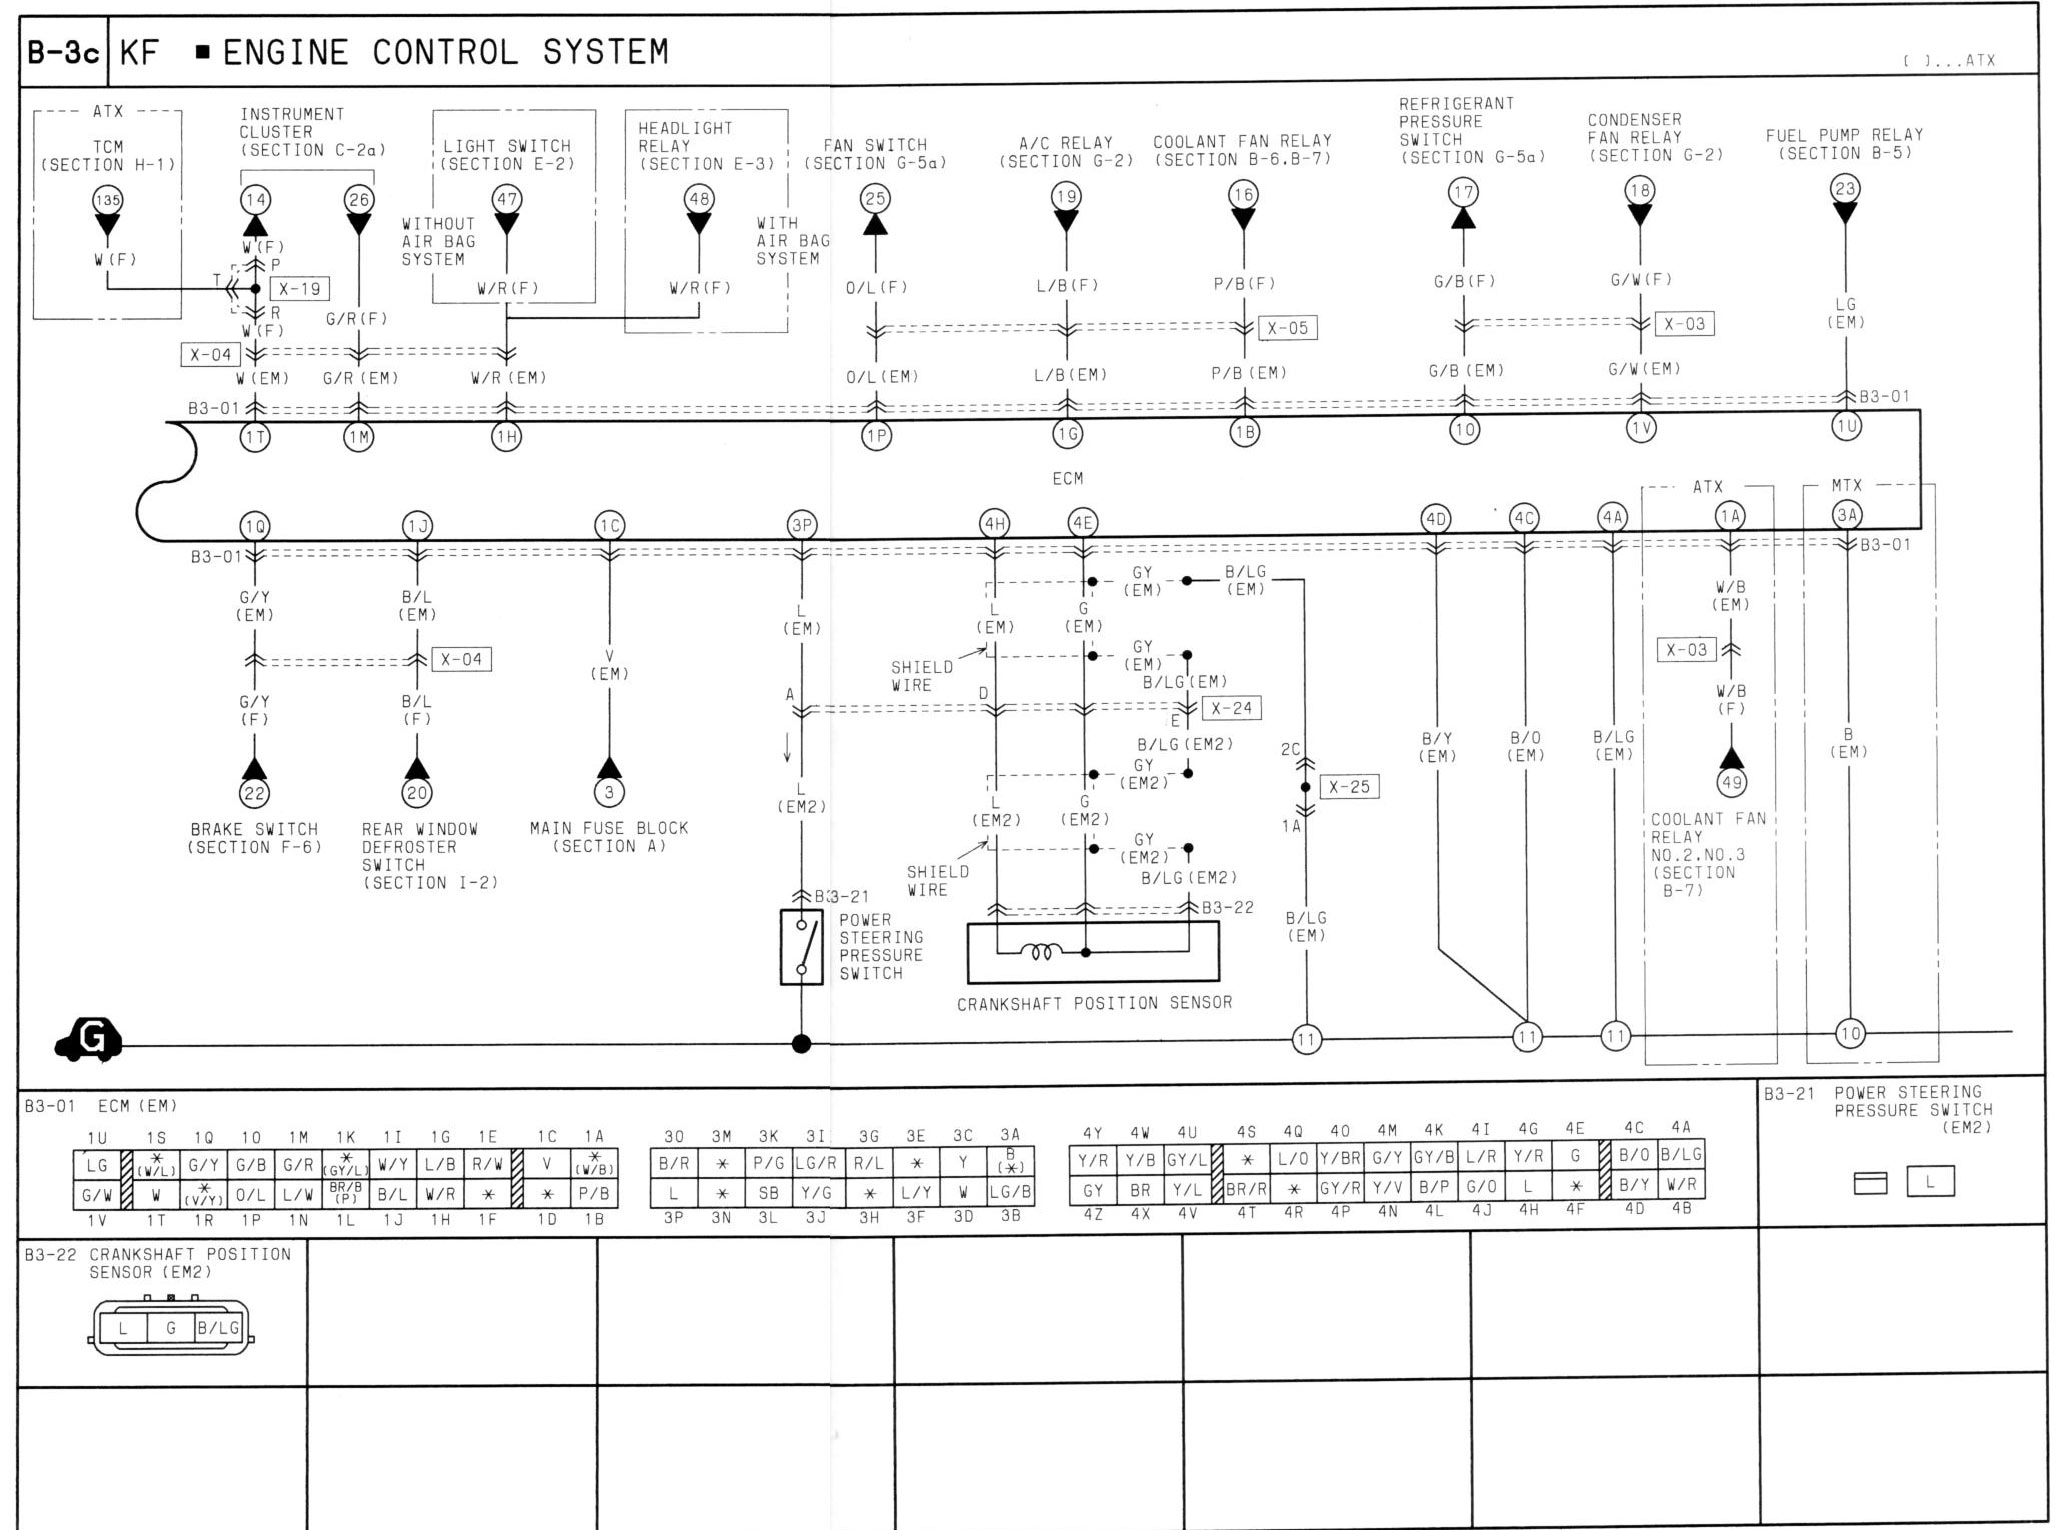 Fuse Box 95 Mazda 626 Wiring Library 98 Diagram Lantis V6 Schematics Diagrams U2022 Rh Parntesis Co